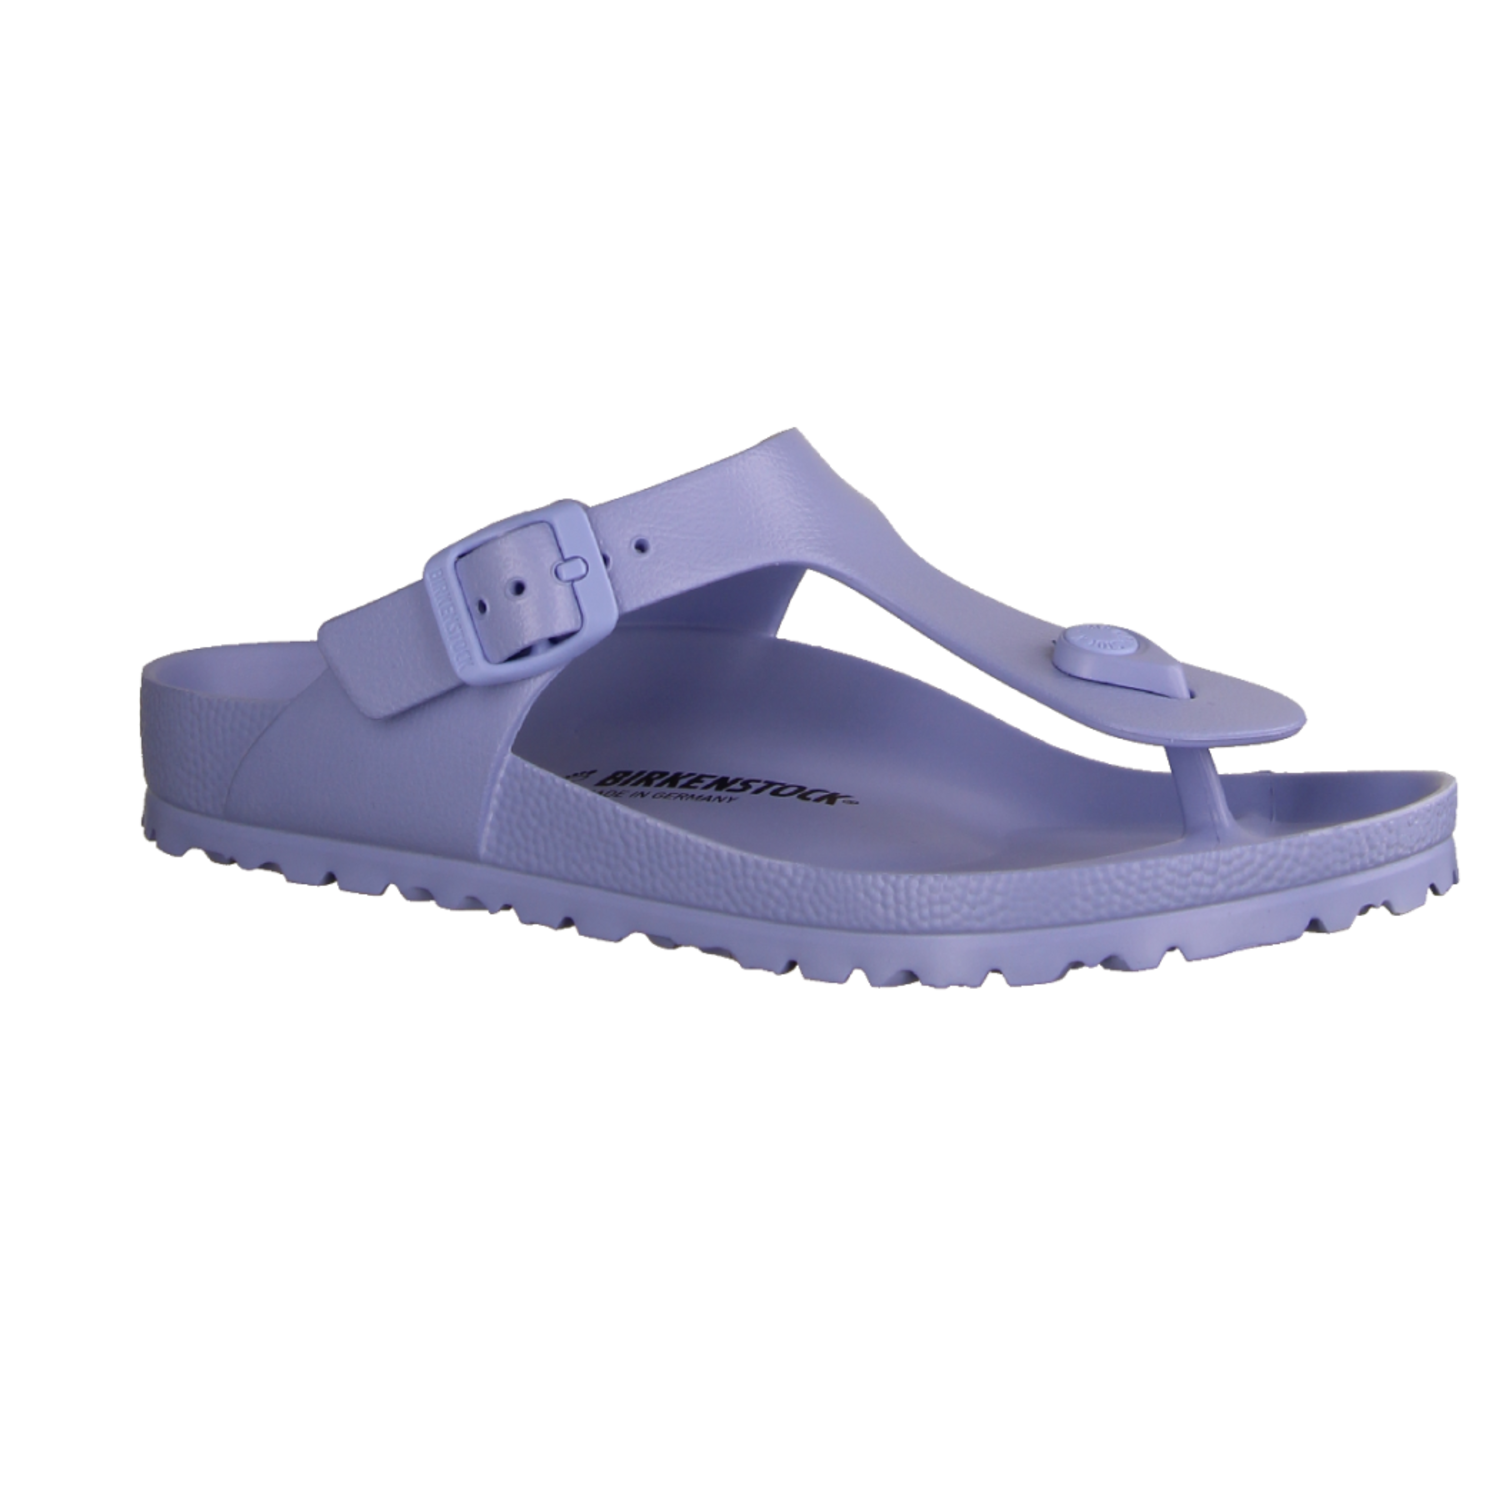 Zehentrenner Damen Birkenstock Gizeh BS 1005301 Dress Blue Birko Flor